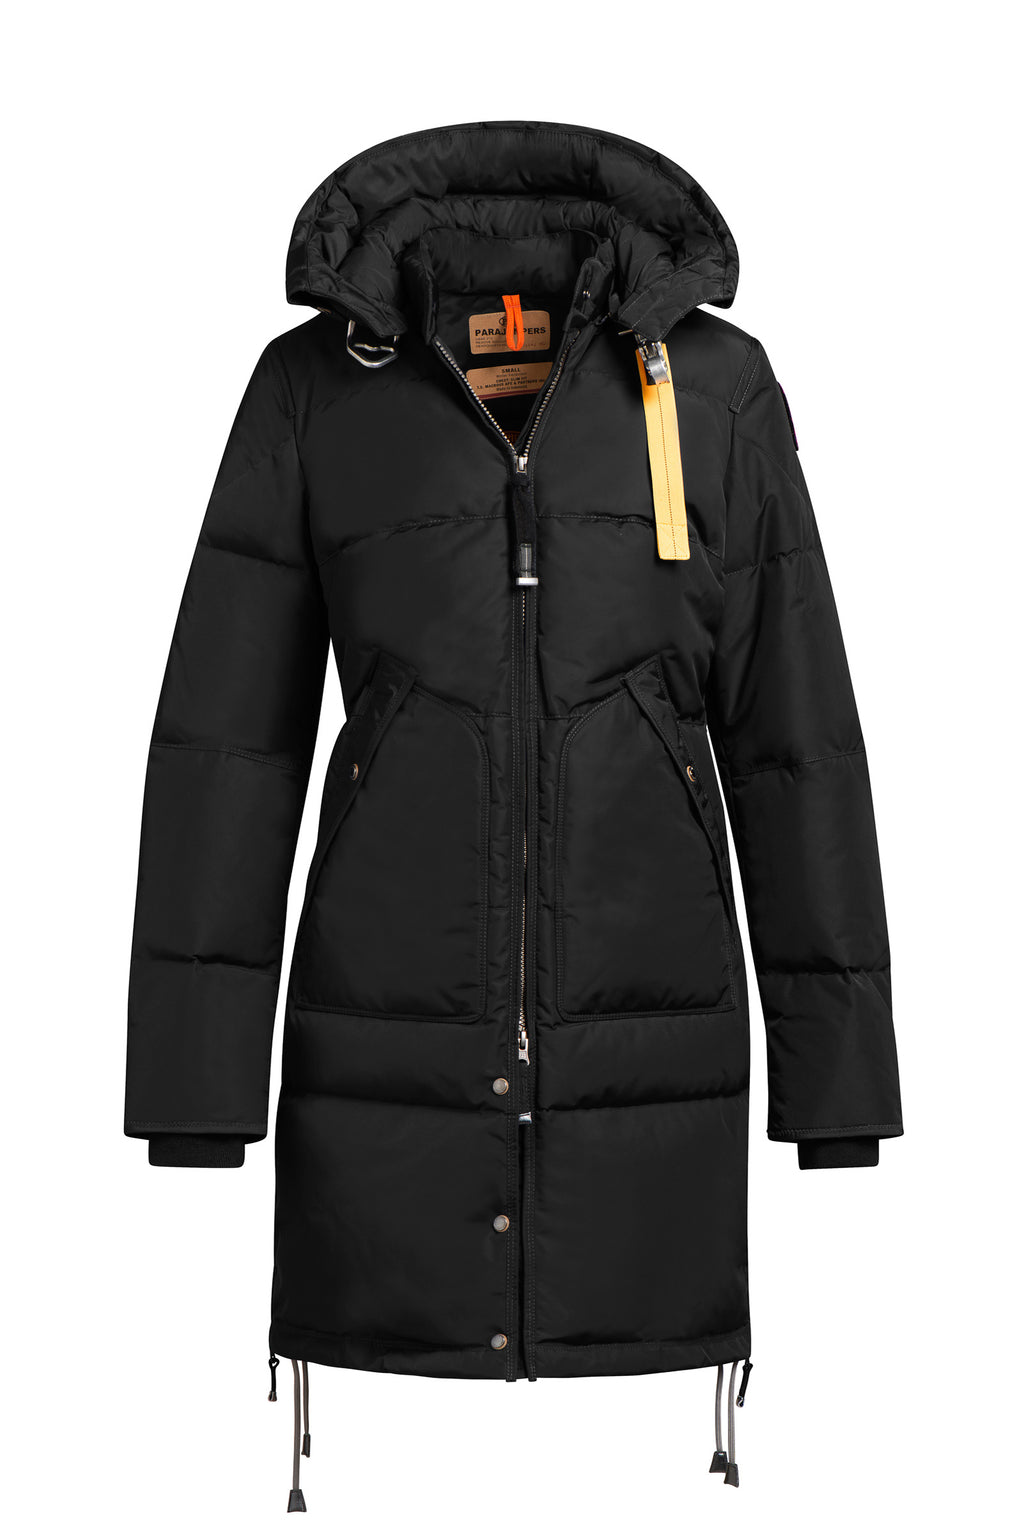 Parajumpers Long Bear Base Parka in Black